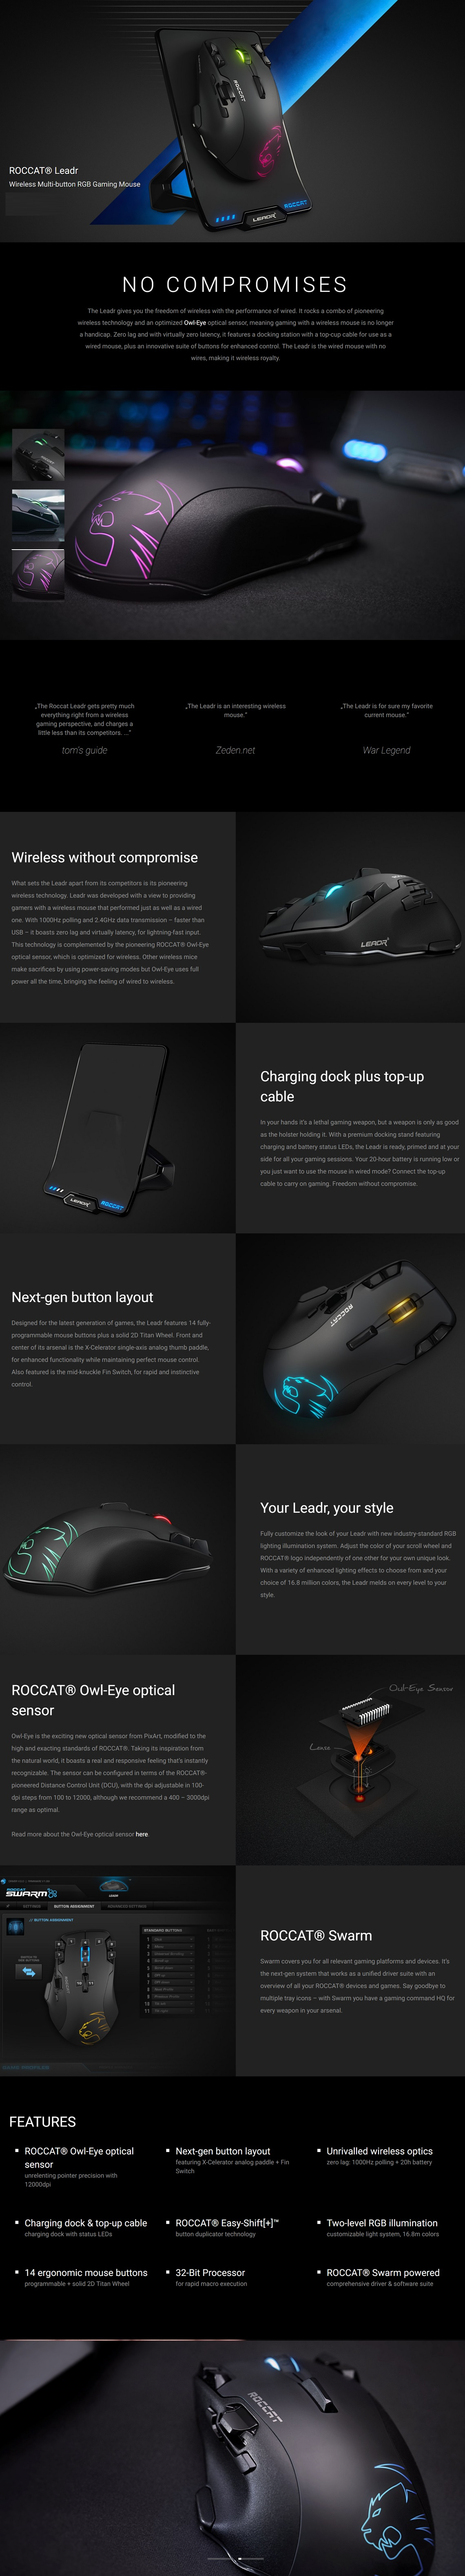 Roccat Leadr Wireless Multi-Button RGB Gaming Mouse with Charging Dock & Top-up Cable